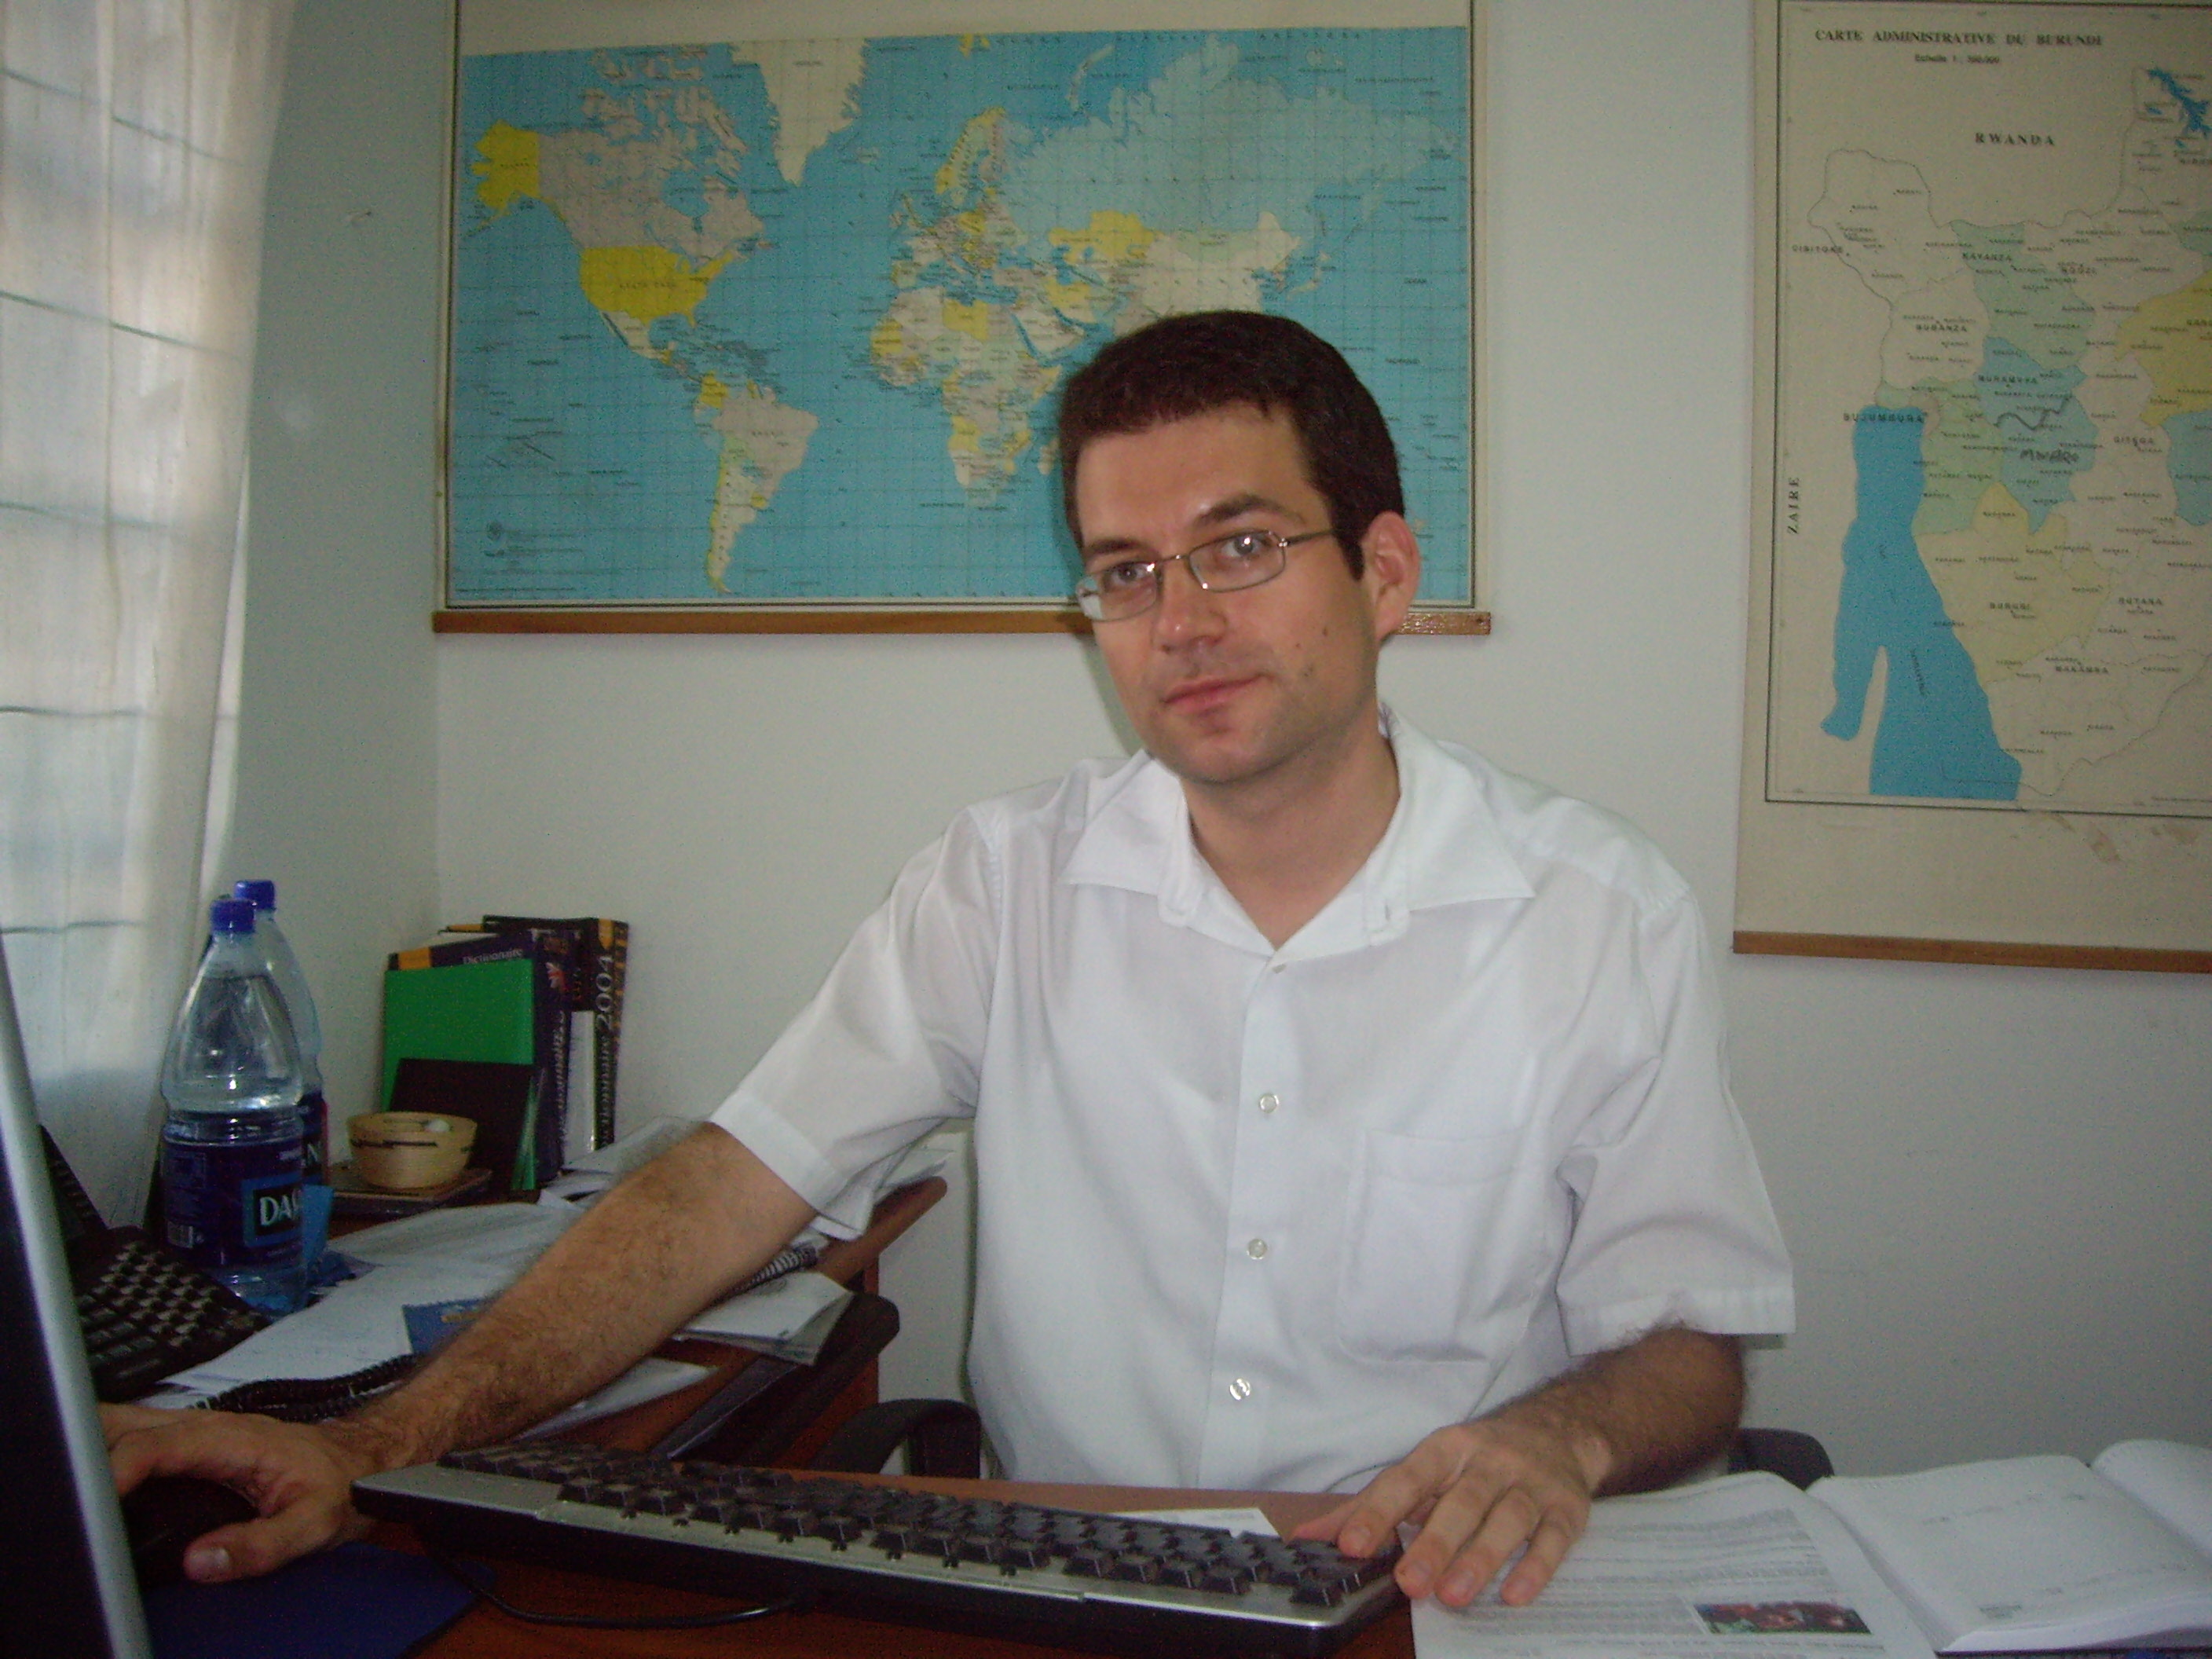 UNHCR associate external relations officer, Andreas Kirchhof, Burundi, May 31, 2007.